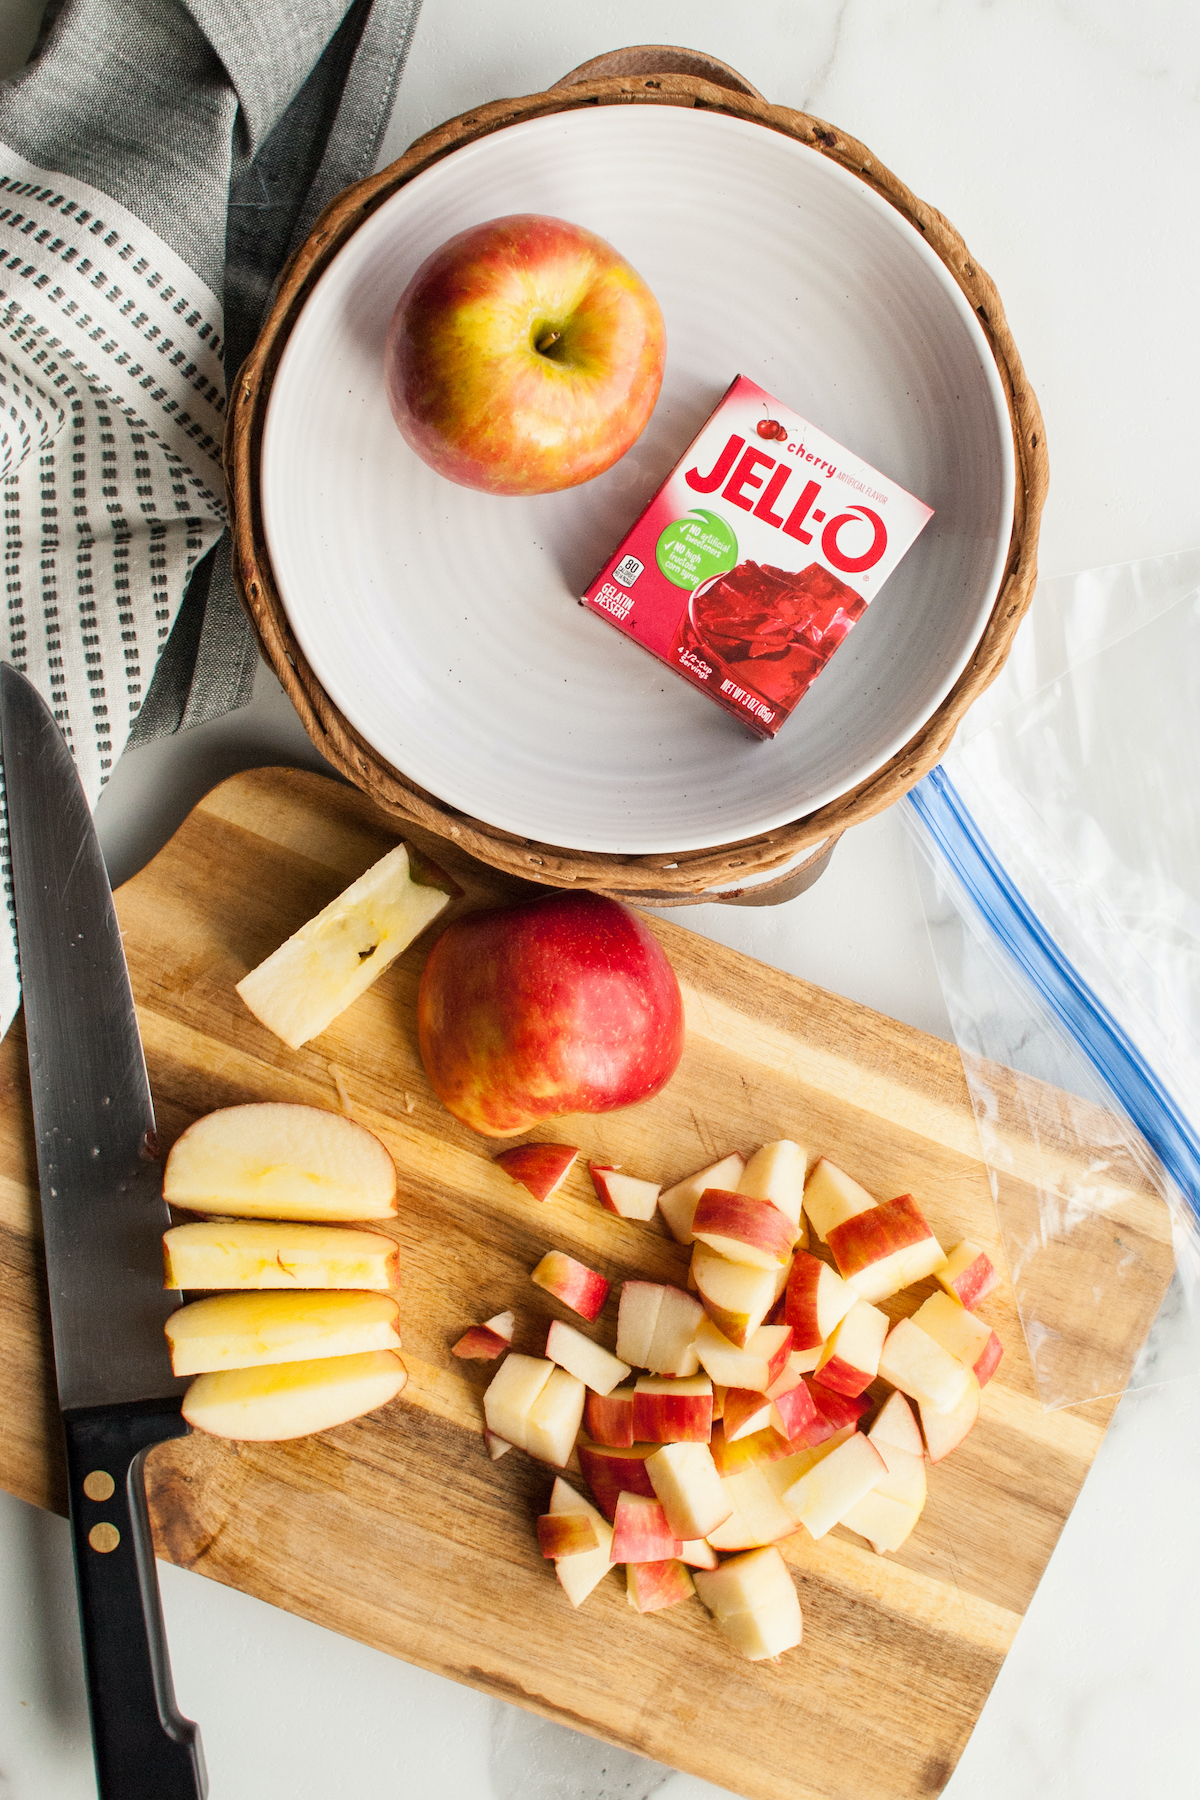 Overhead view of chopped apples on a cutting board next to a box of Jello